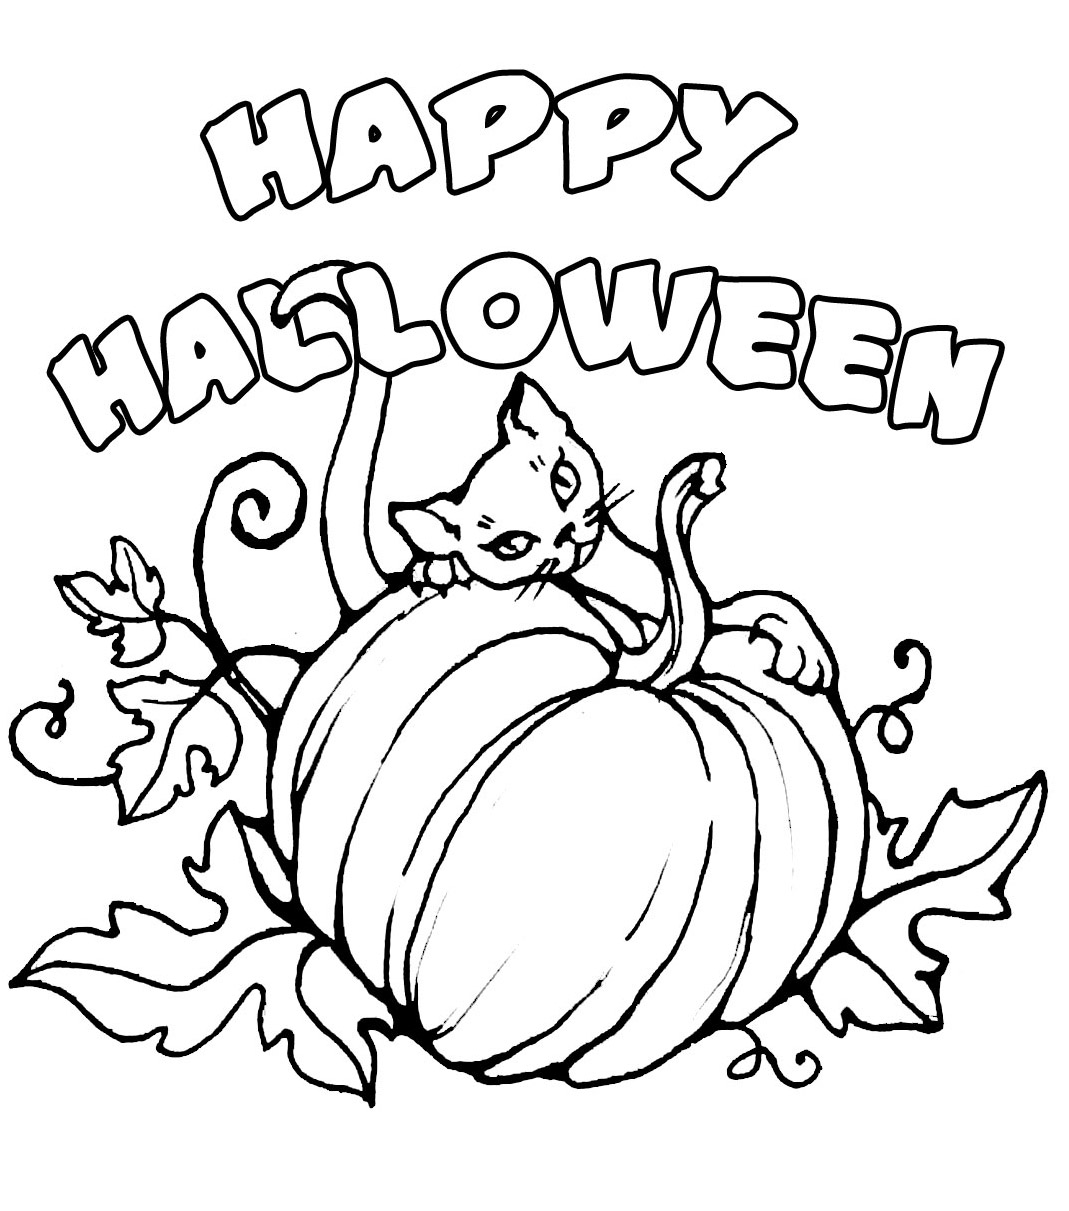 Halloween Day Drawings To Print Images